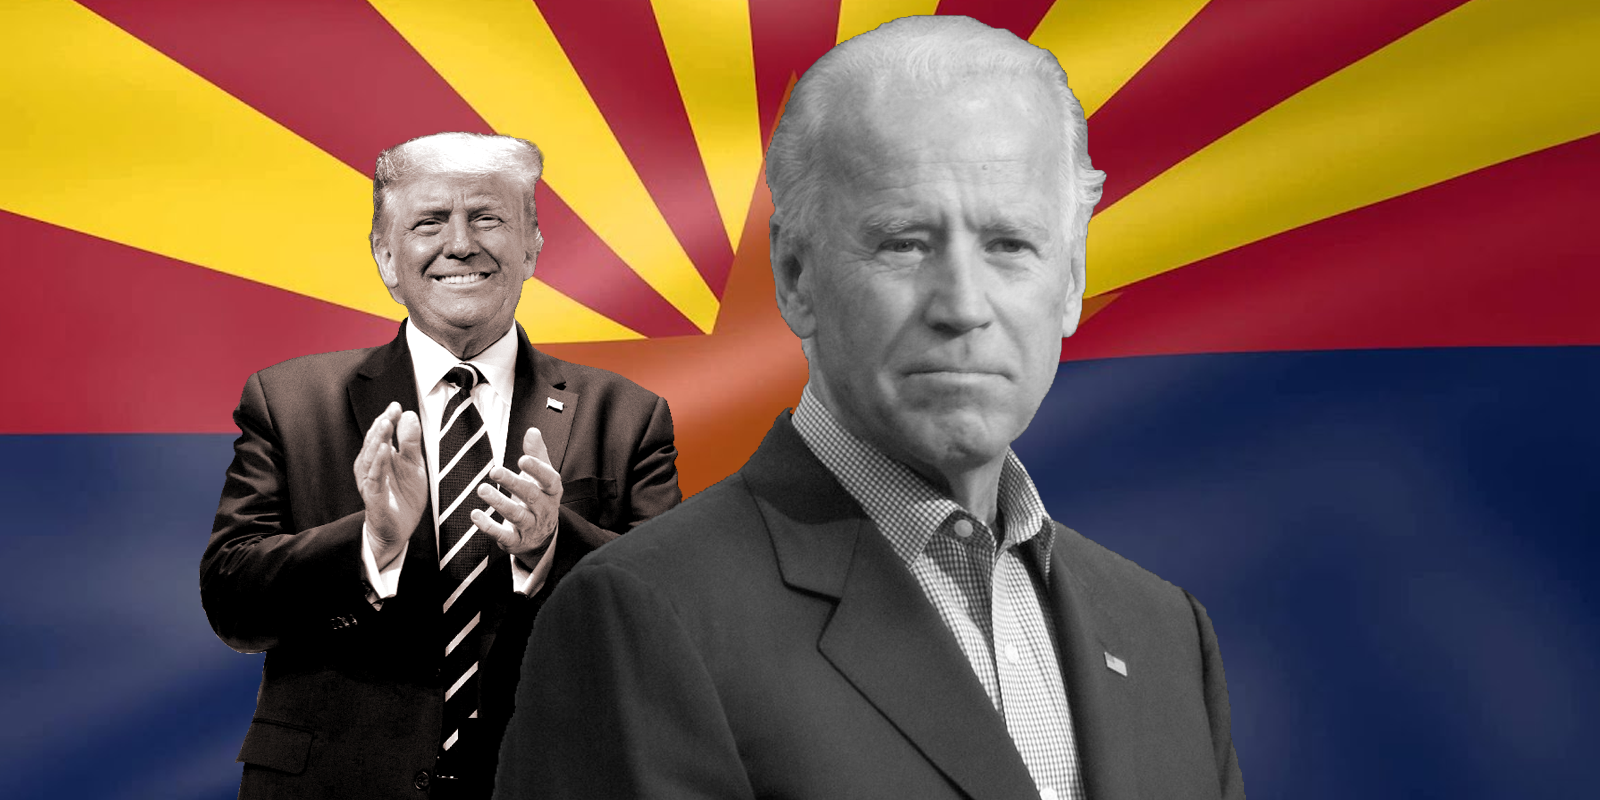 BREAKING: Arizona legislature to hold hearing on election integrity, Trump lawyers to attend